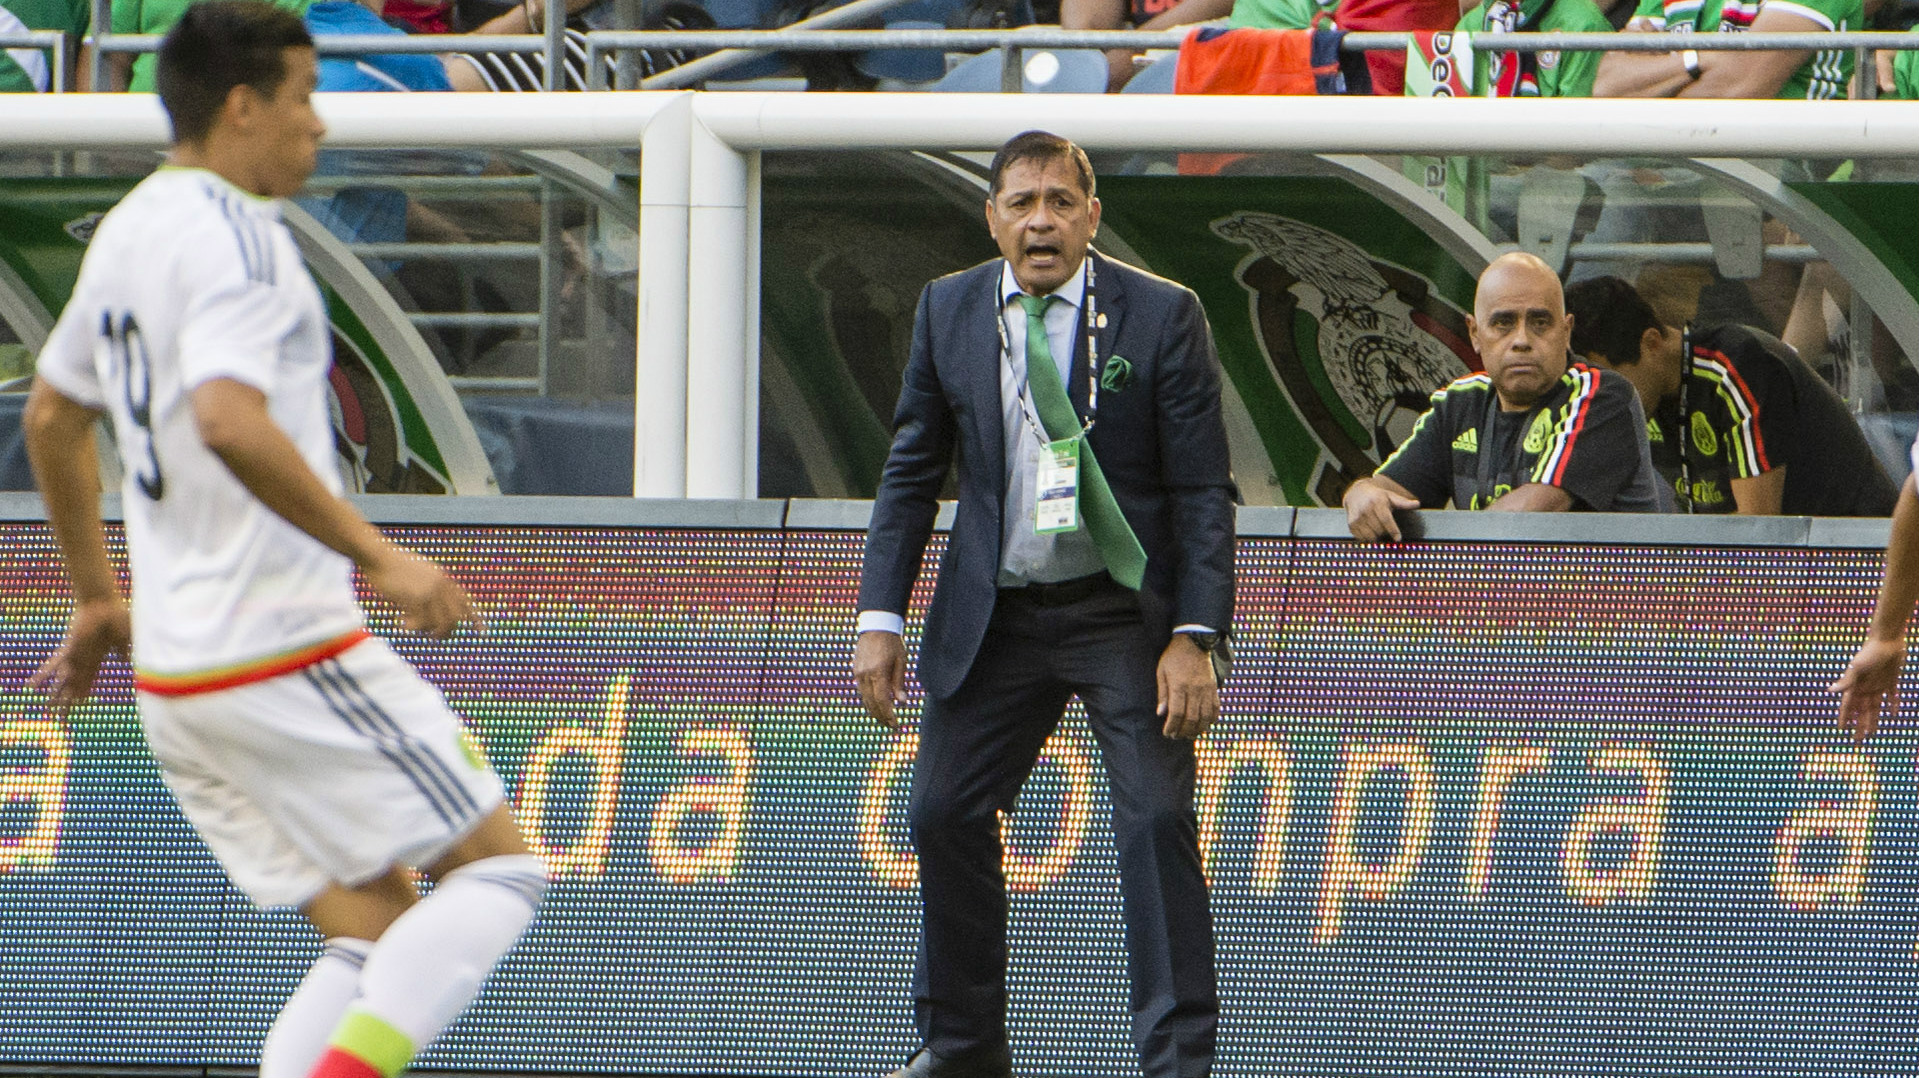 FIFA announces 6-game ban for Mexico's Osorio after Confed. Cup incident